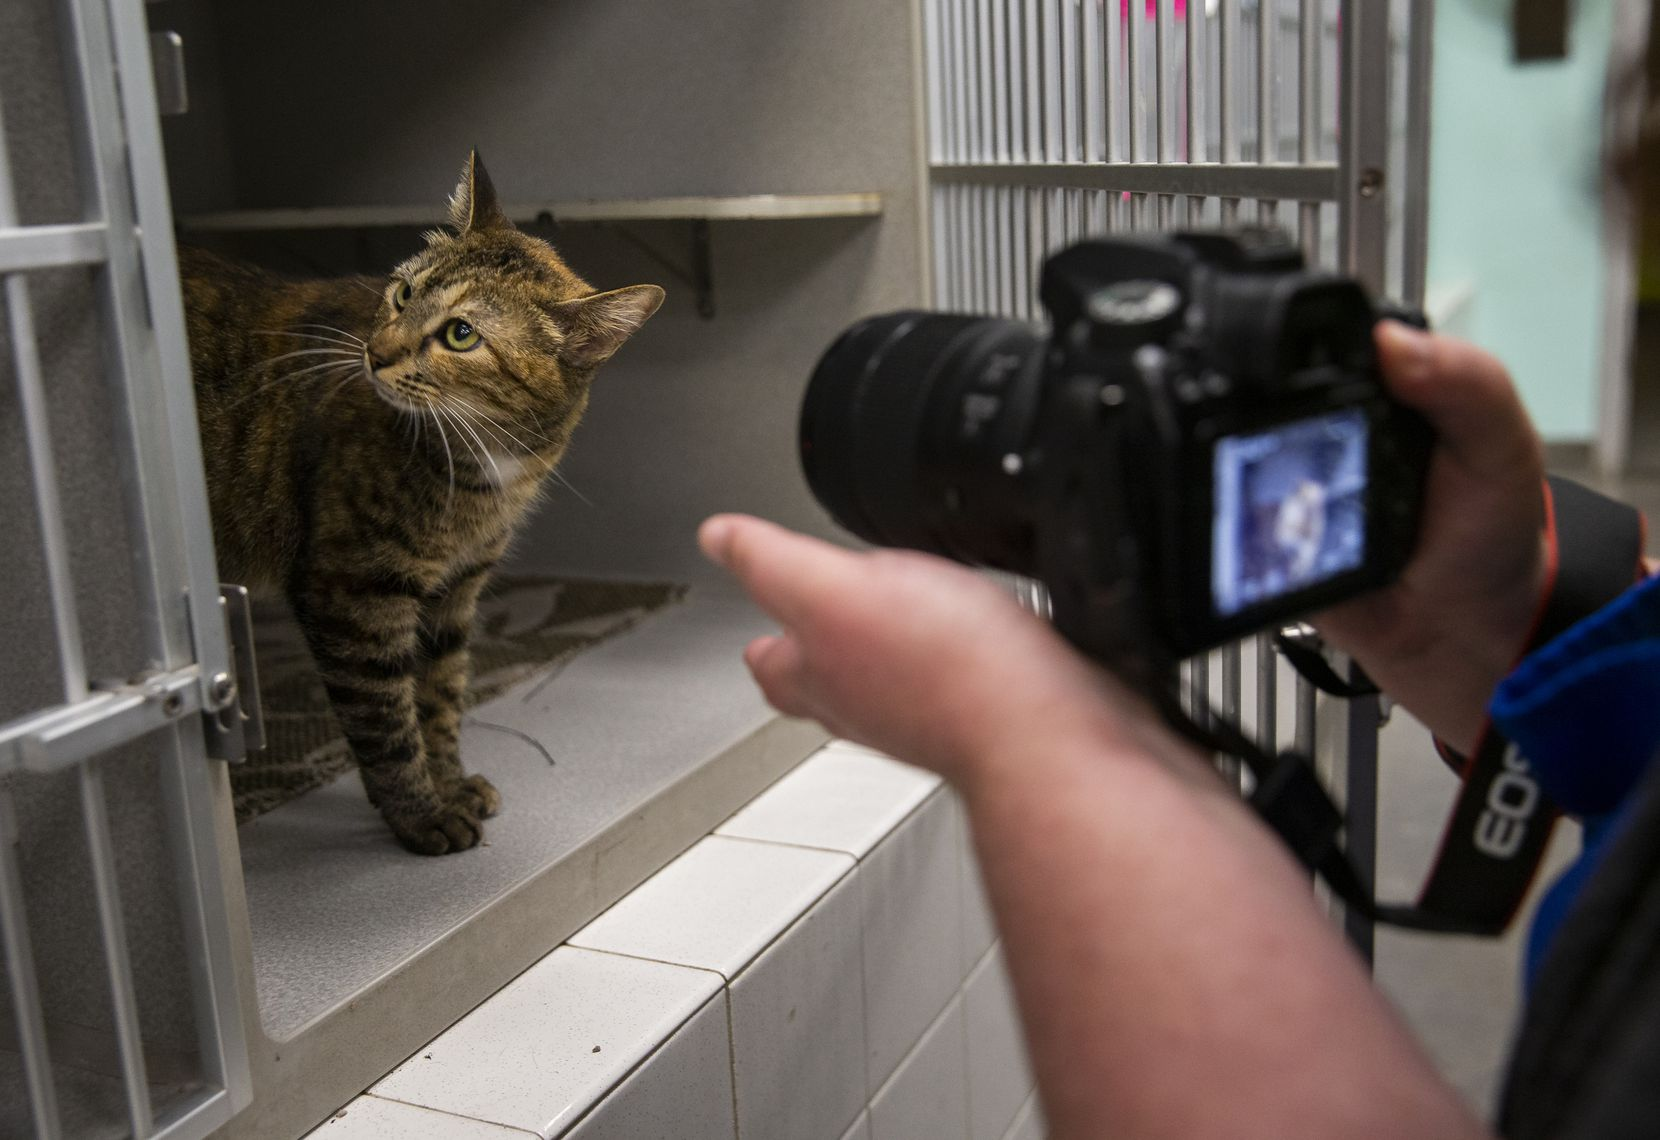 Megan Padgett, Dallas Animal Services coordinator, takes a photo of Jenny (A1068801) at Dallas Animal Services on Thursday as part of creating an online profile for the cat. The shelter is relying on online fosters and adoptions as the public is no longer allowed into the building as a result of the coronavirus pandemic.